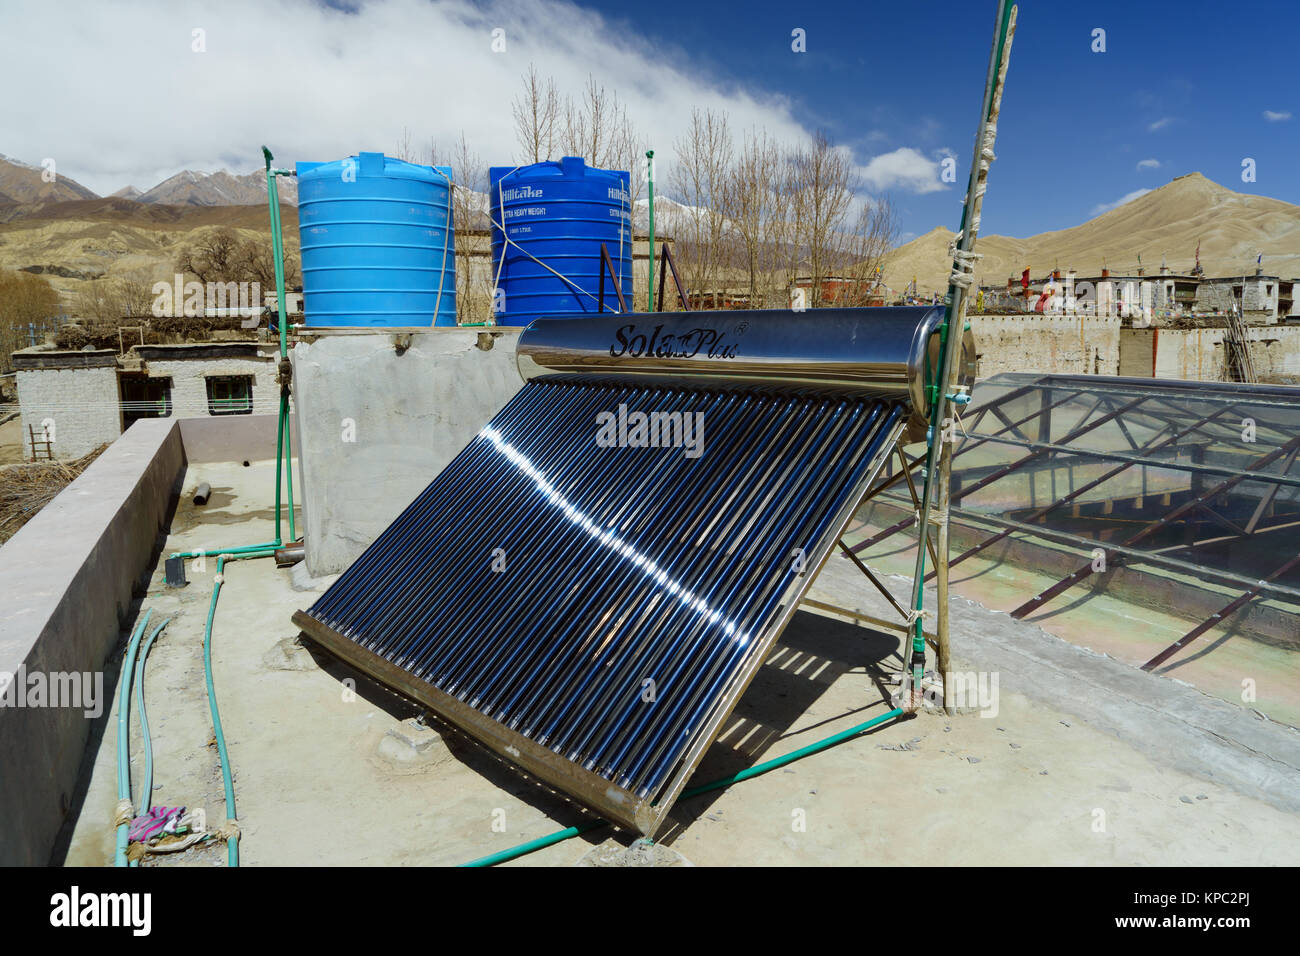 Solar water heater collector and tanks on the roof of a guesthouse in Lo Mantang, Upper Mustang region, Nepal. - Stock Image